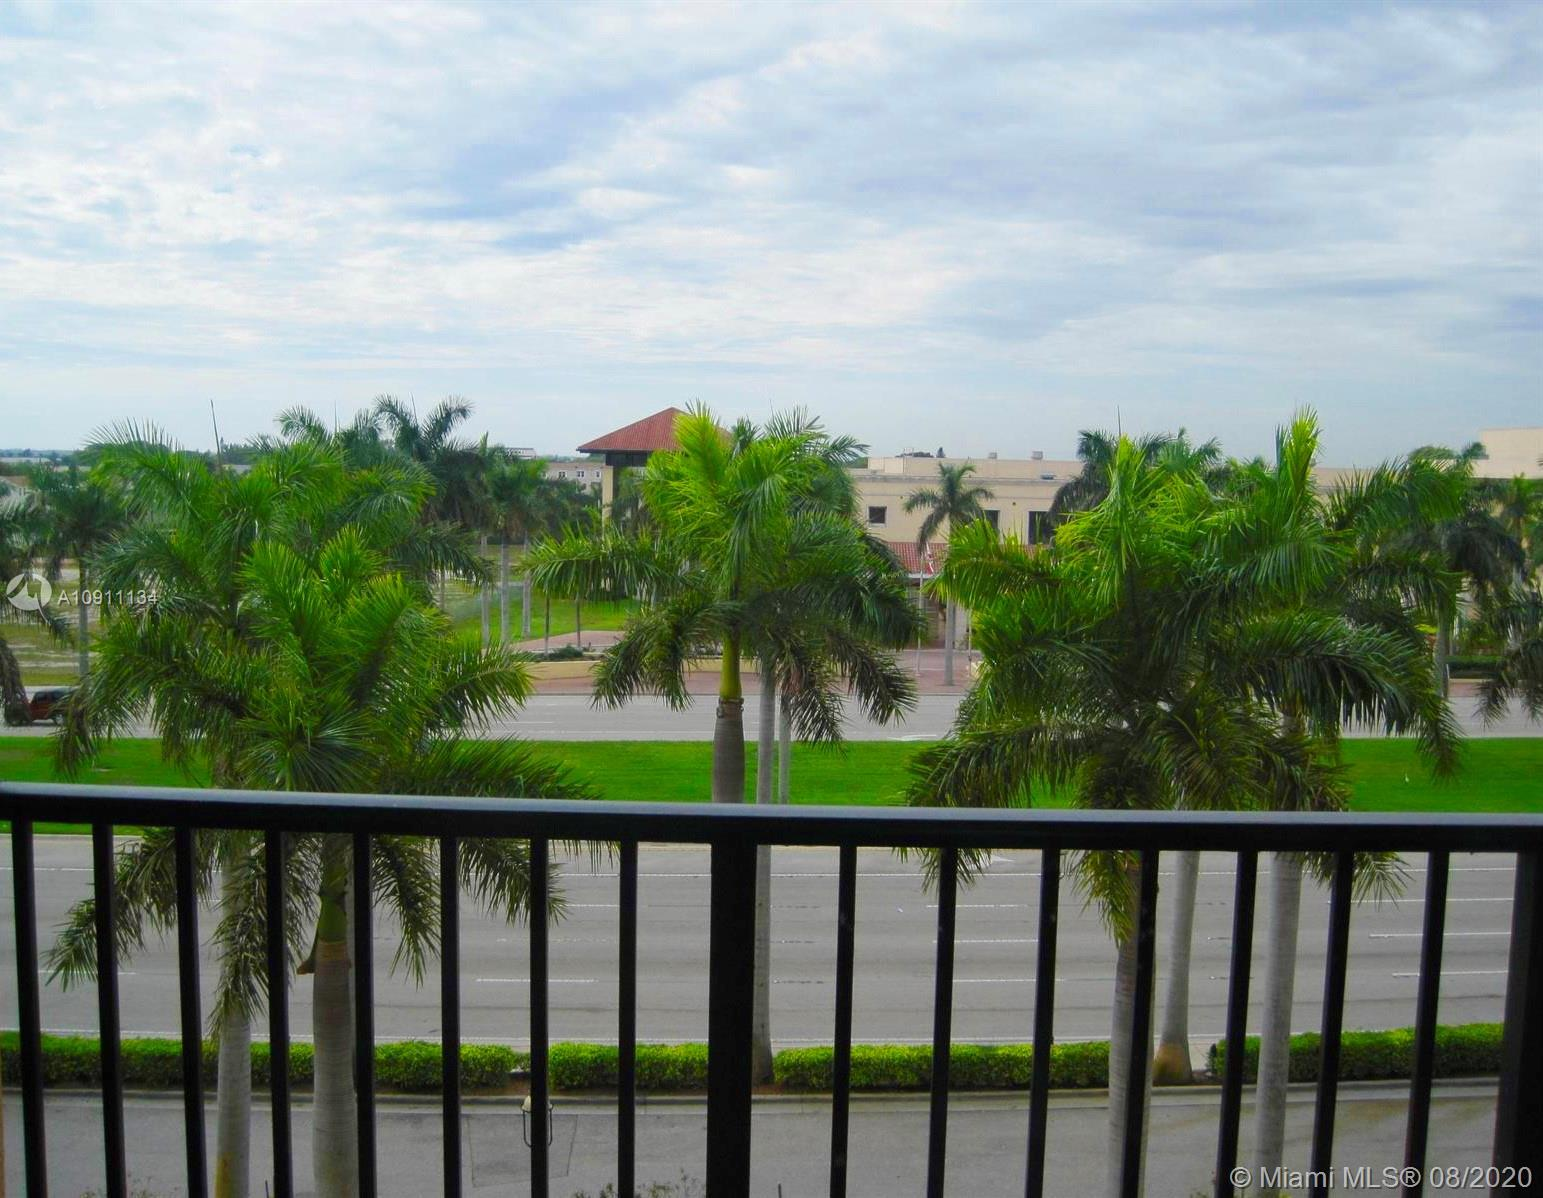 2 BR/2BA Downtown West Palm Beach Condo with Travertine Marble floors throughout.  Travertine marble